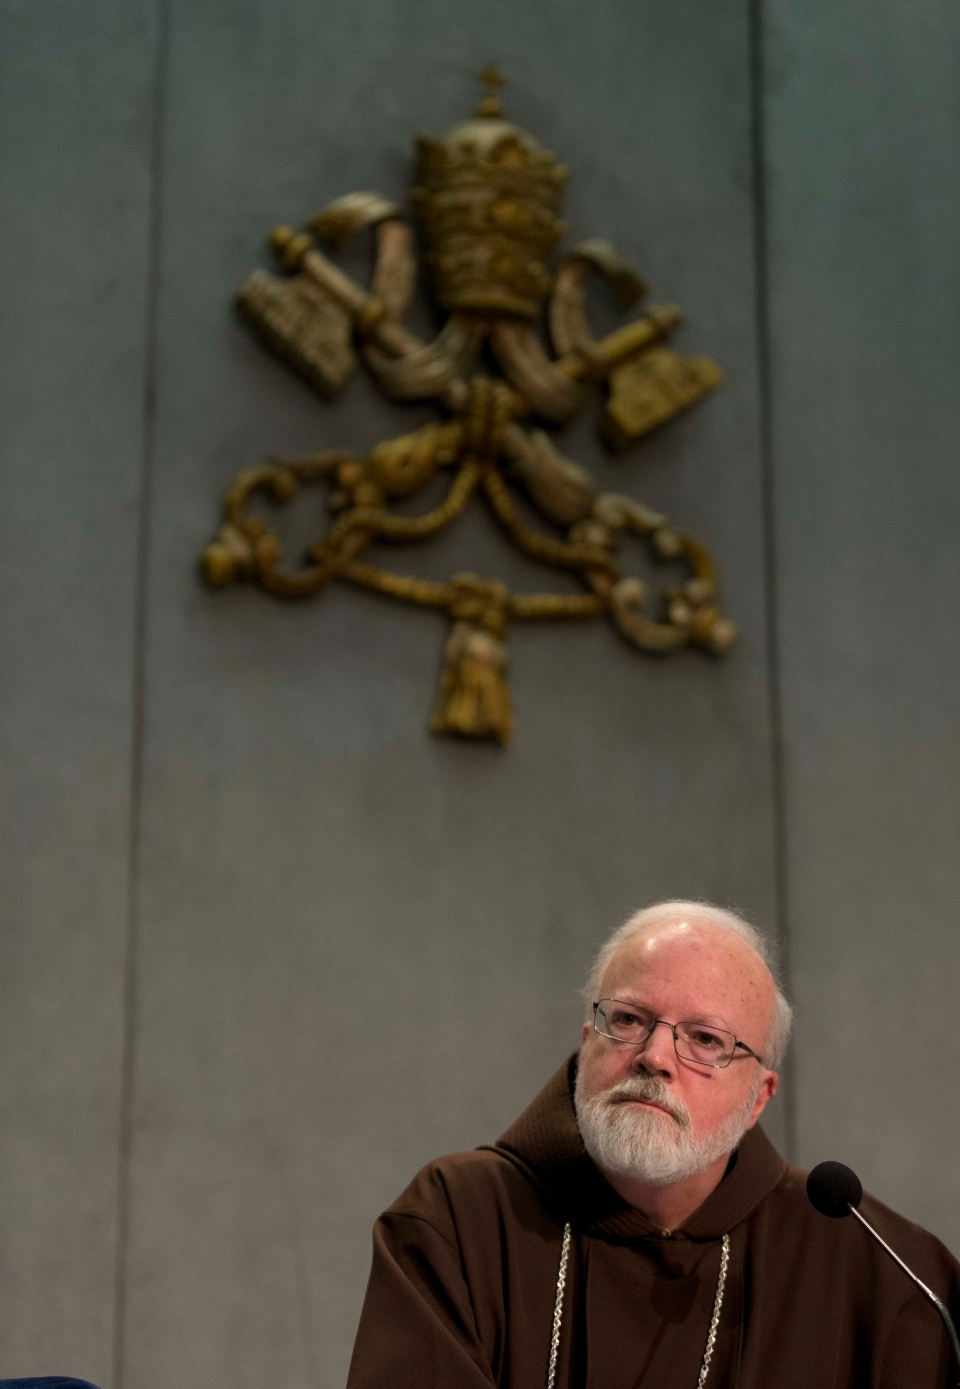 Cardinal Sean O'Malley, the archbishop of Boston, listens to a reporter's questions during a press conference at the Vatican, Thursday, Dec. 5, 2013. (AP Photo/Alessandra Tarantino)